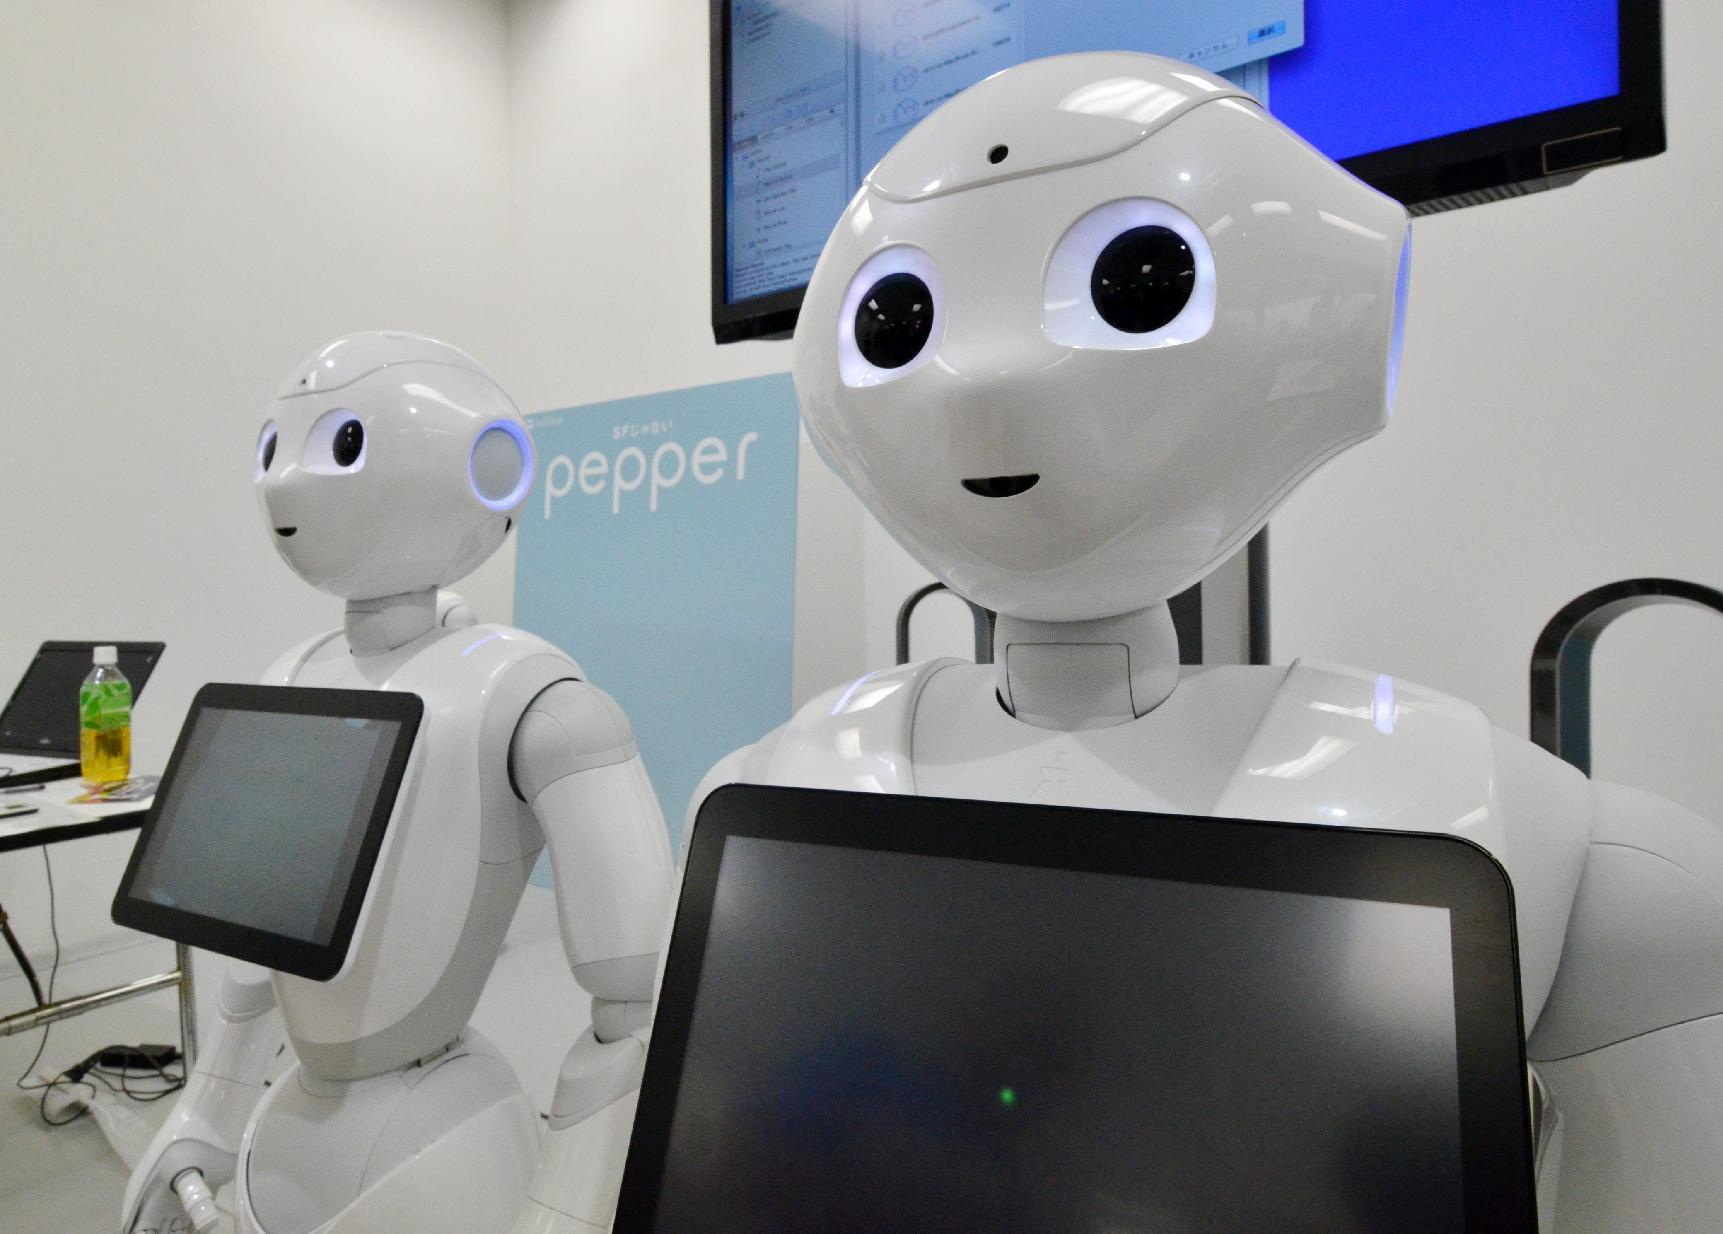 """Softbank's humanoid robot """"Pepper"""" is displayed at a high-tech gadgets exhibition in Tokyo"""